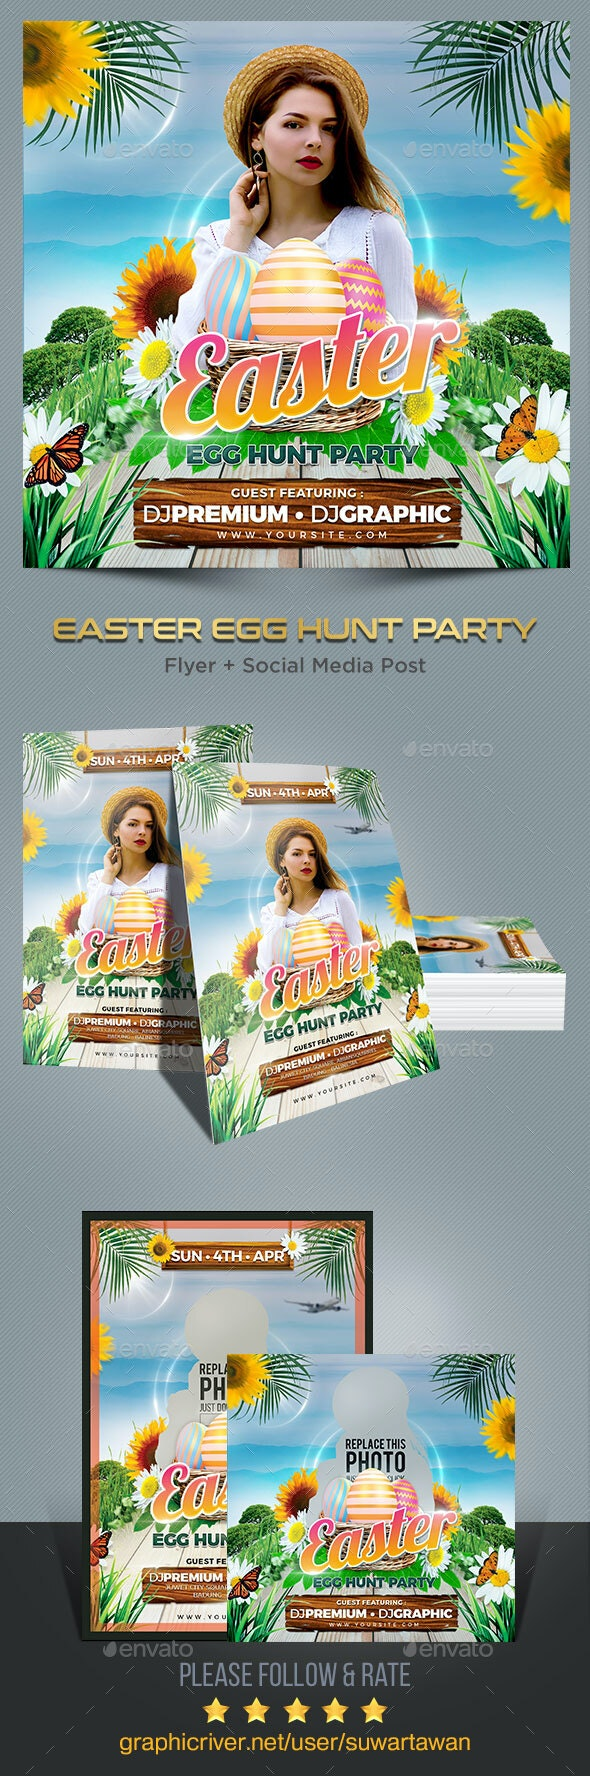 Easter Egg Hunt Party Flyer Template - Print Templates